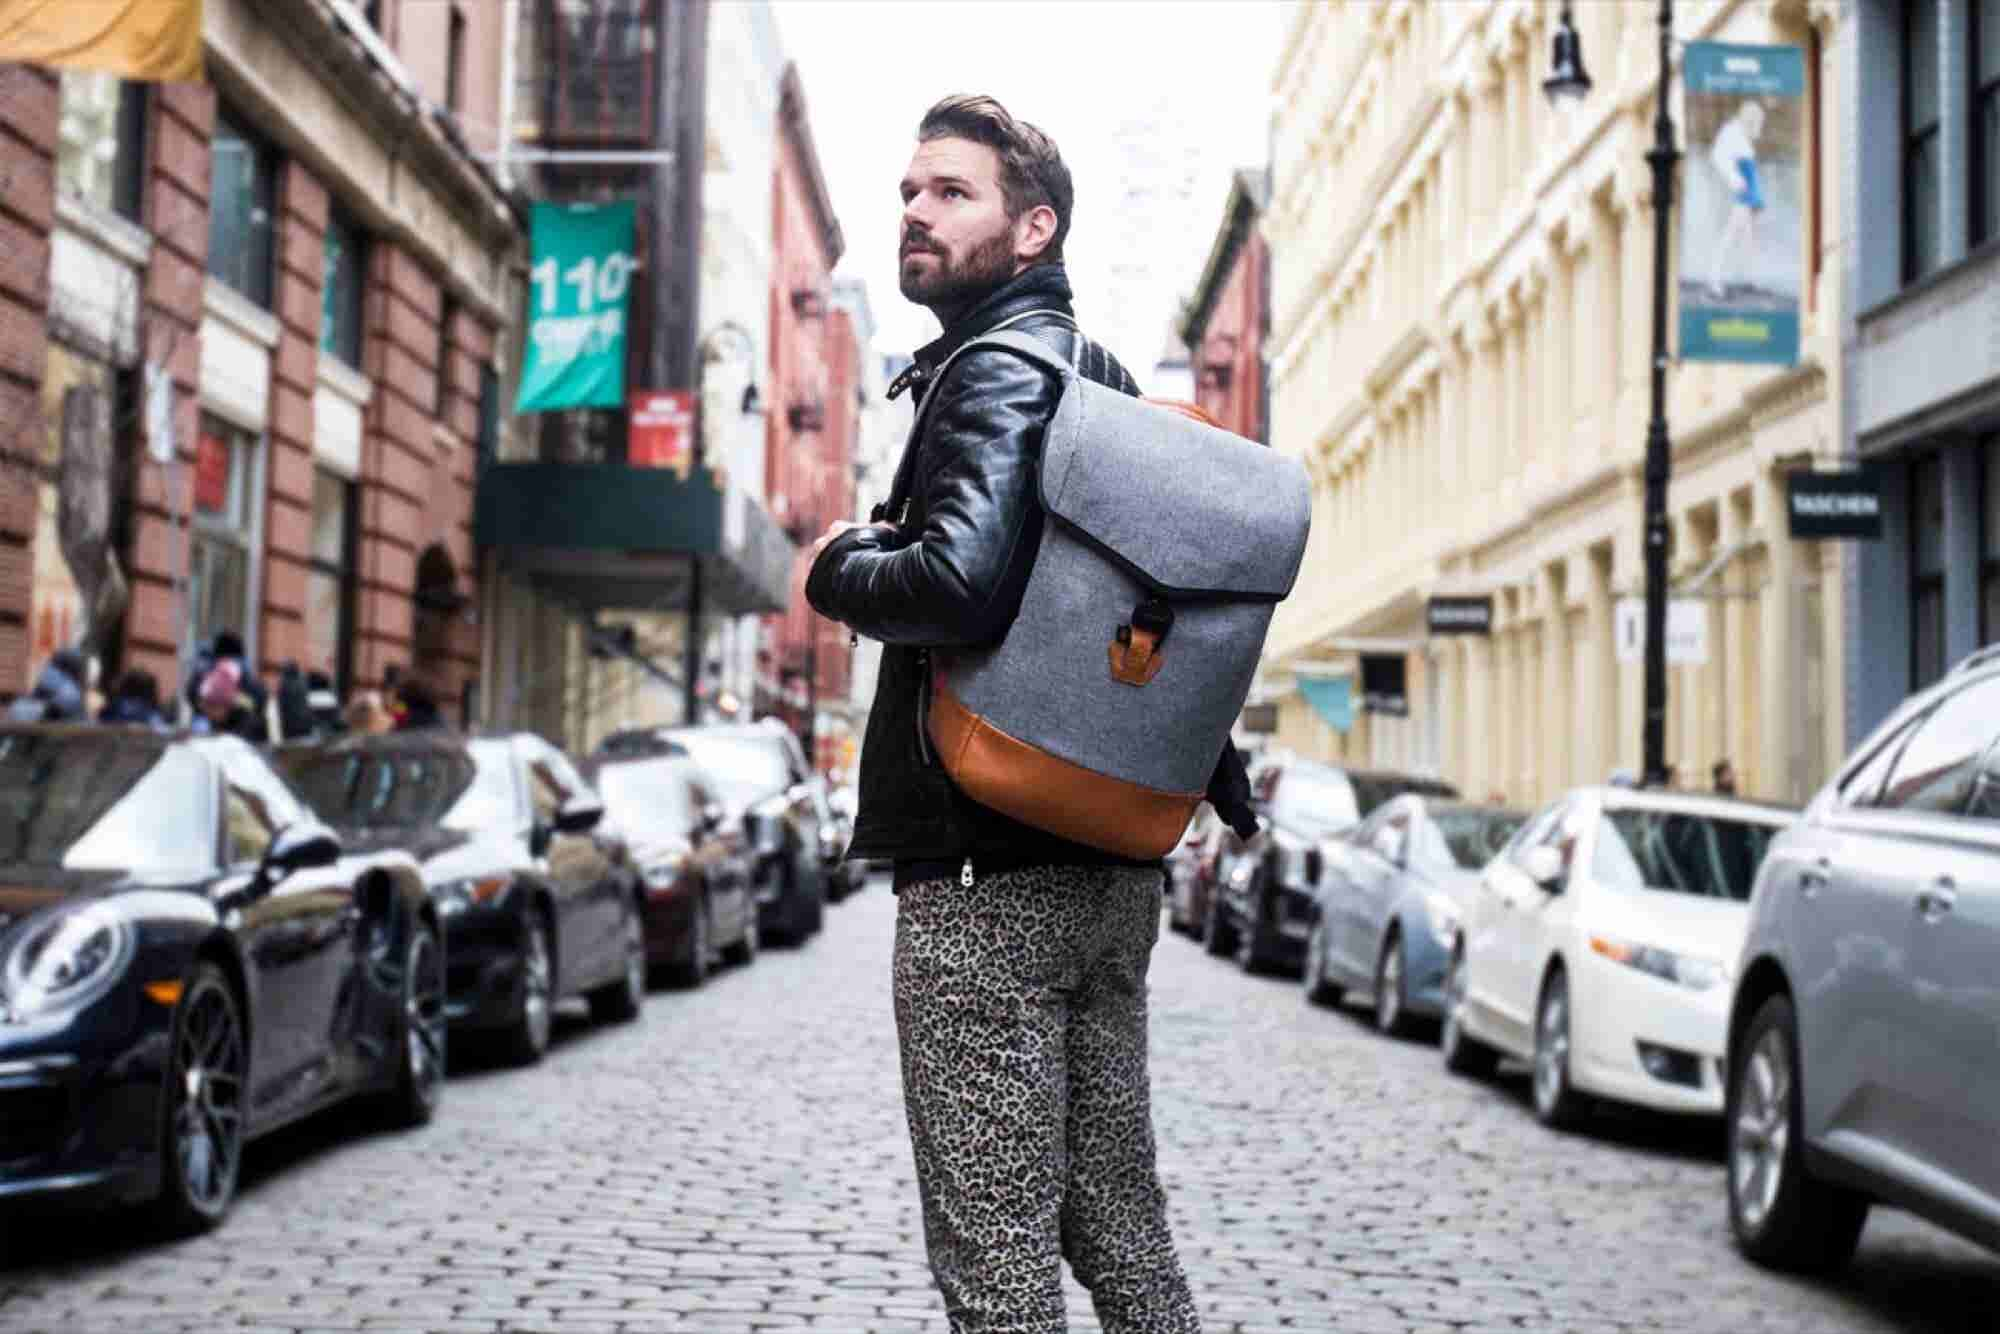 To Keep His Kickstarter Backers Happy, This Entrepreneur Is Wearing Leopard-Print Pants Every Day